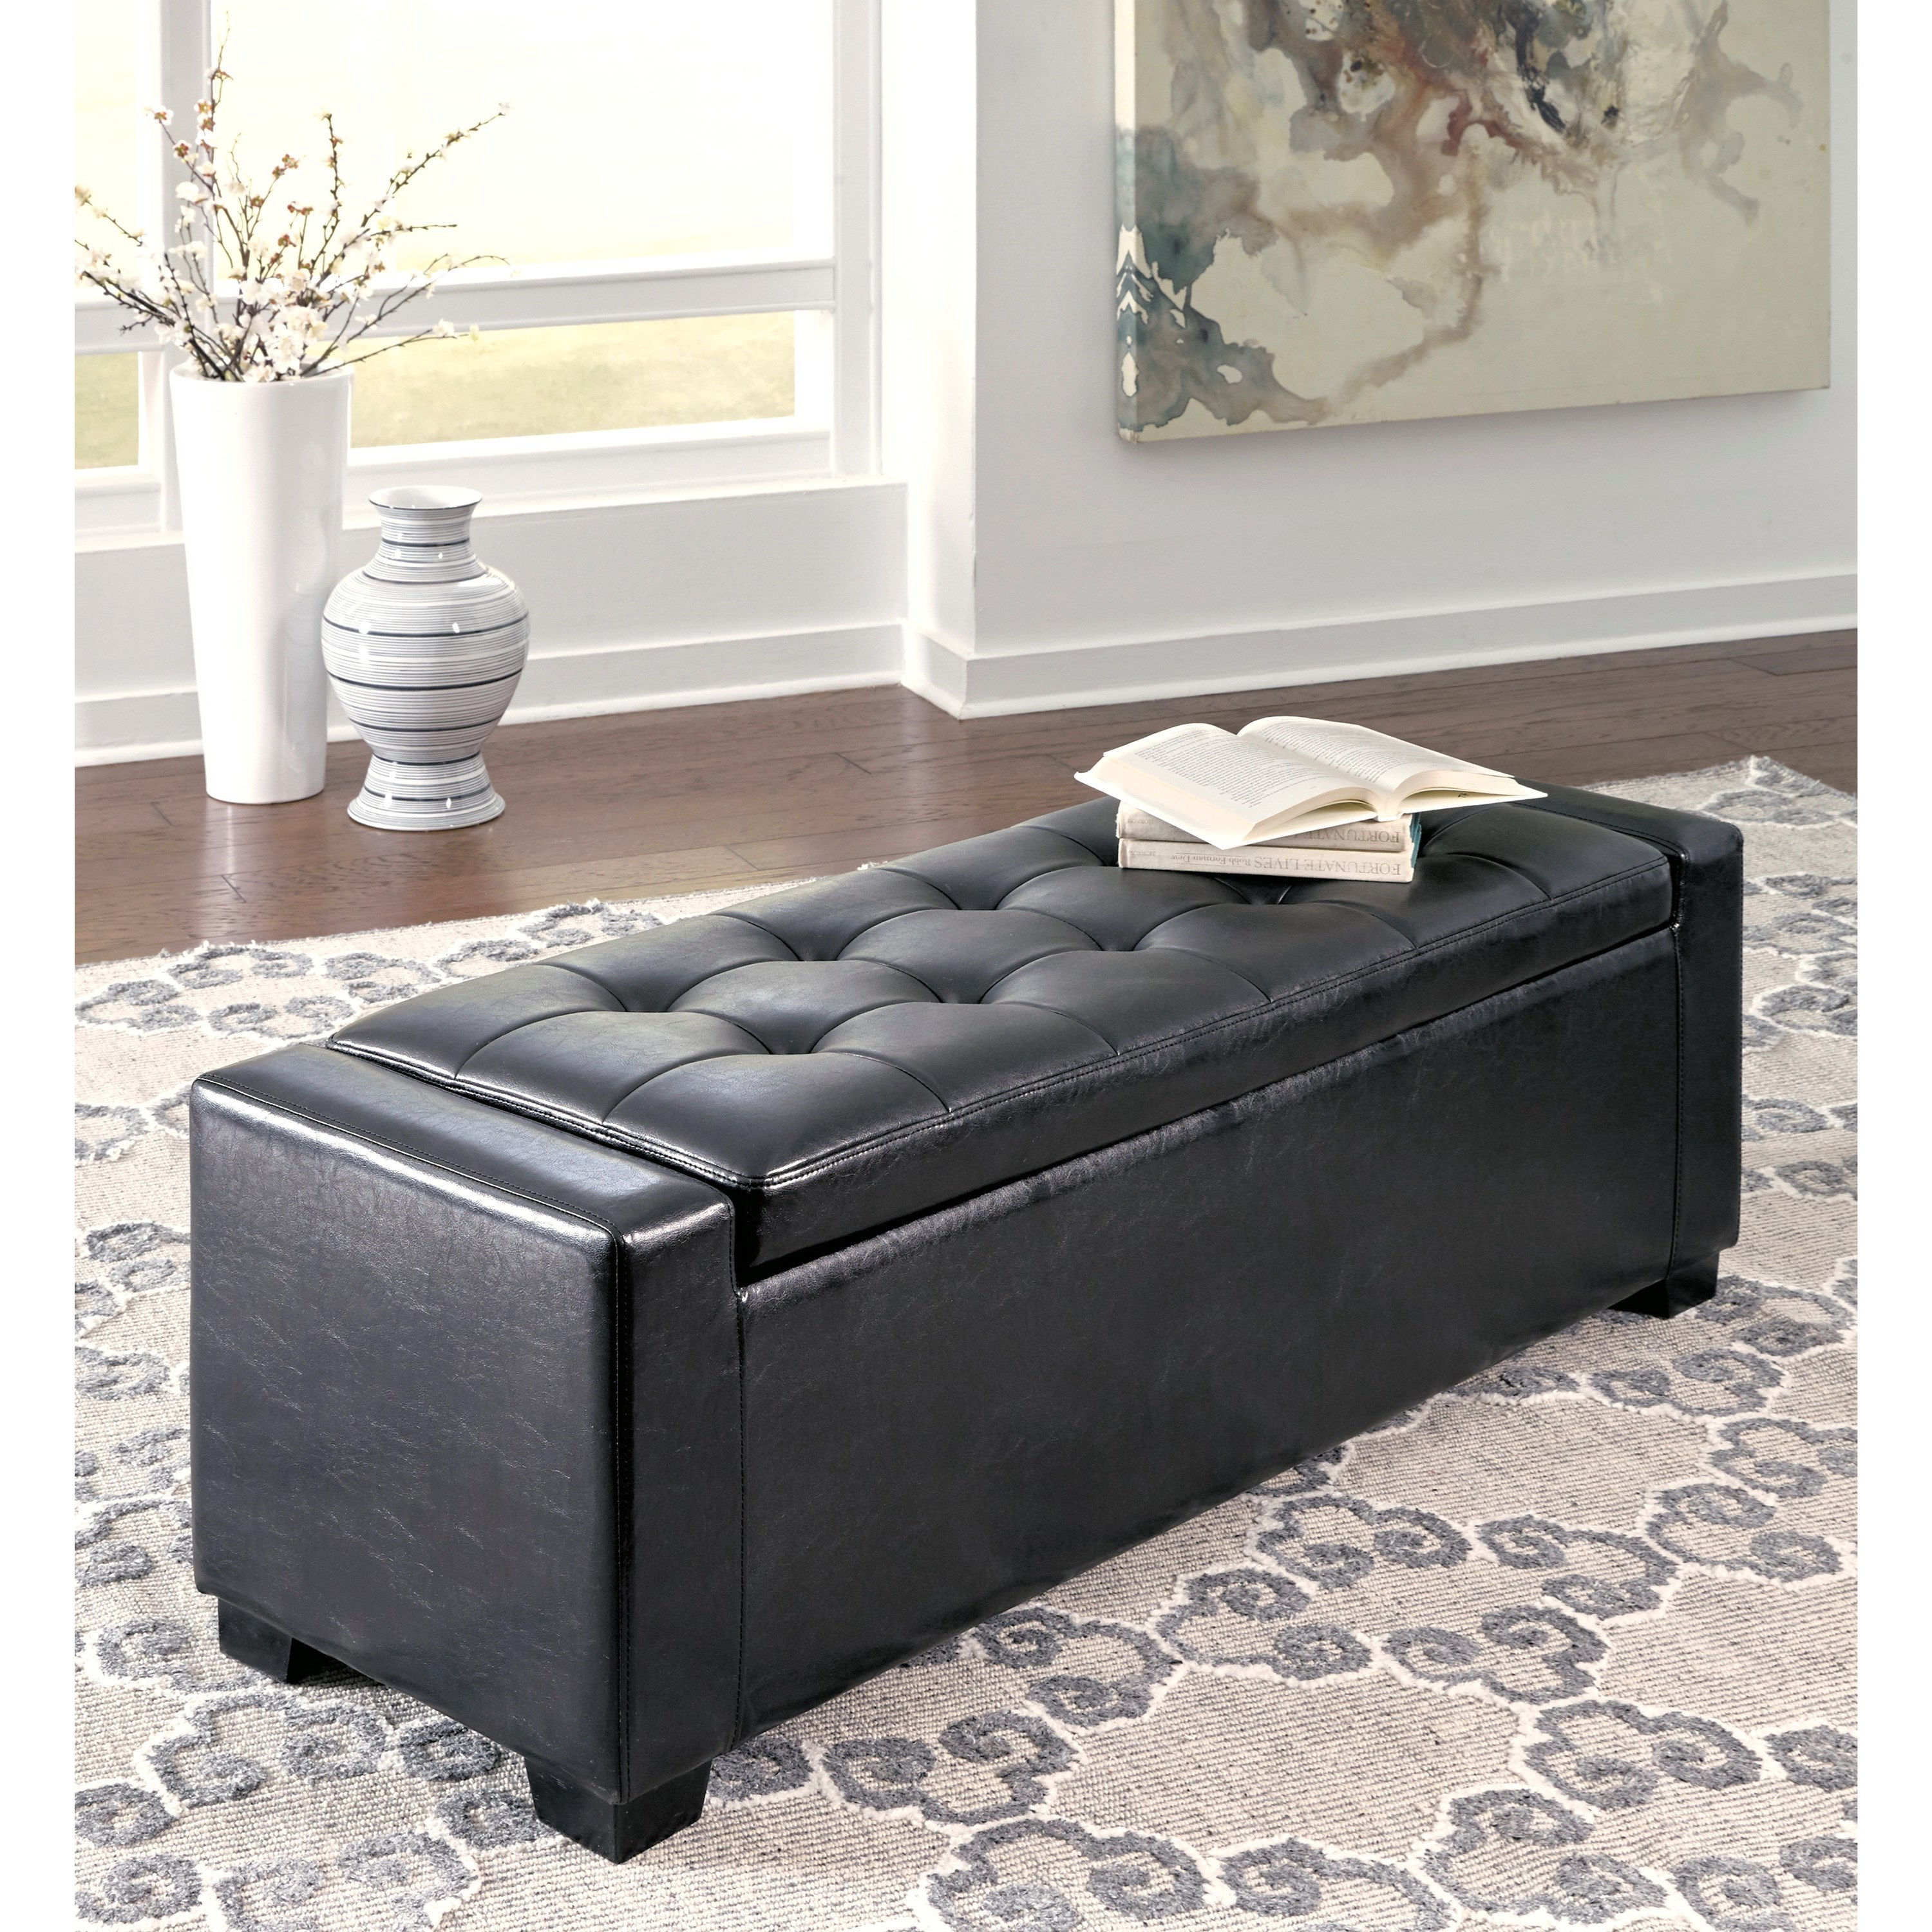 Ashley Signature Design Benches B010 209 Upholstered Storage Bench In Black Faux Leather With